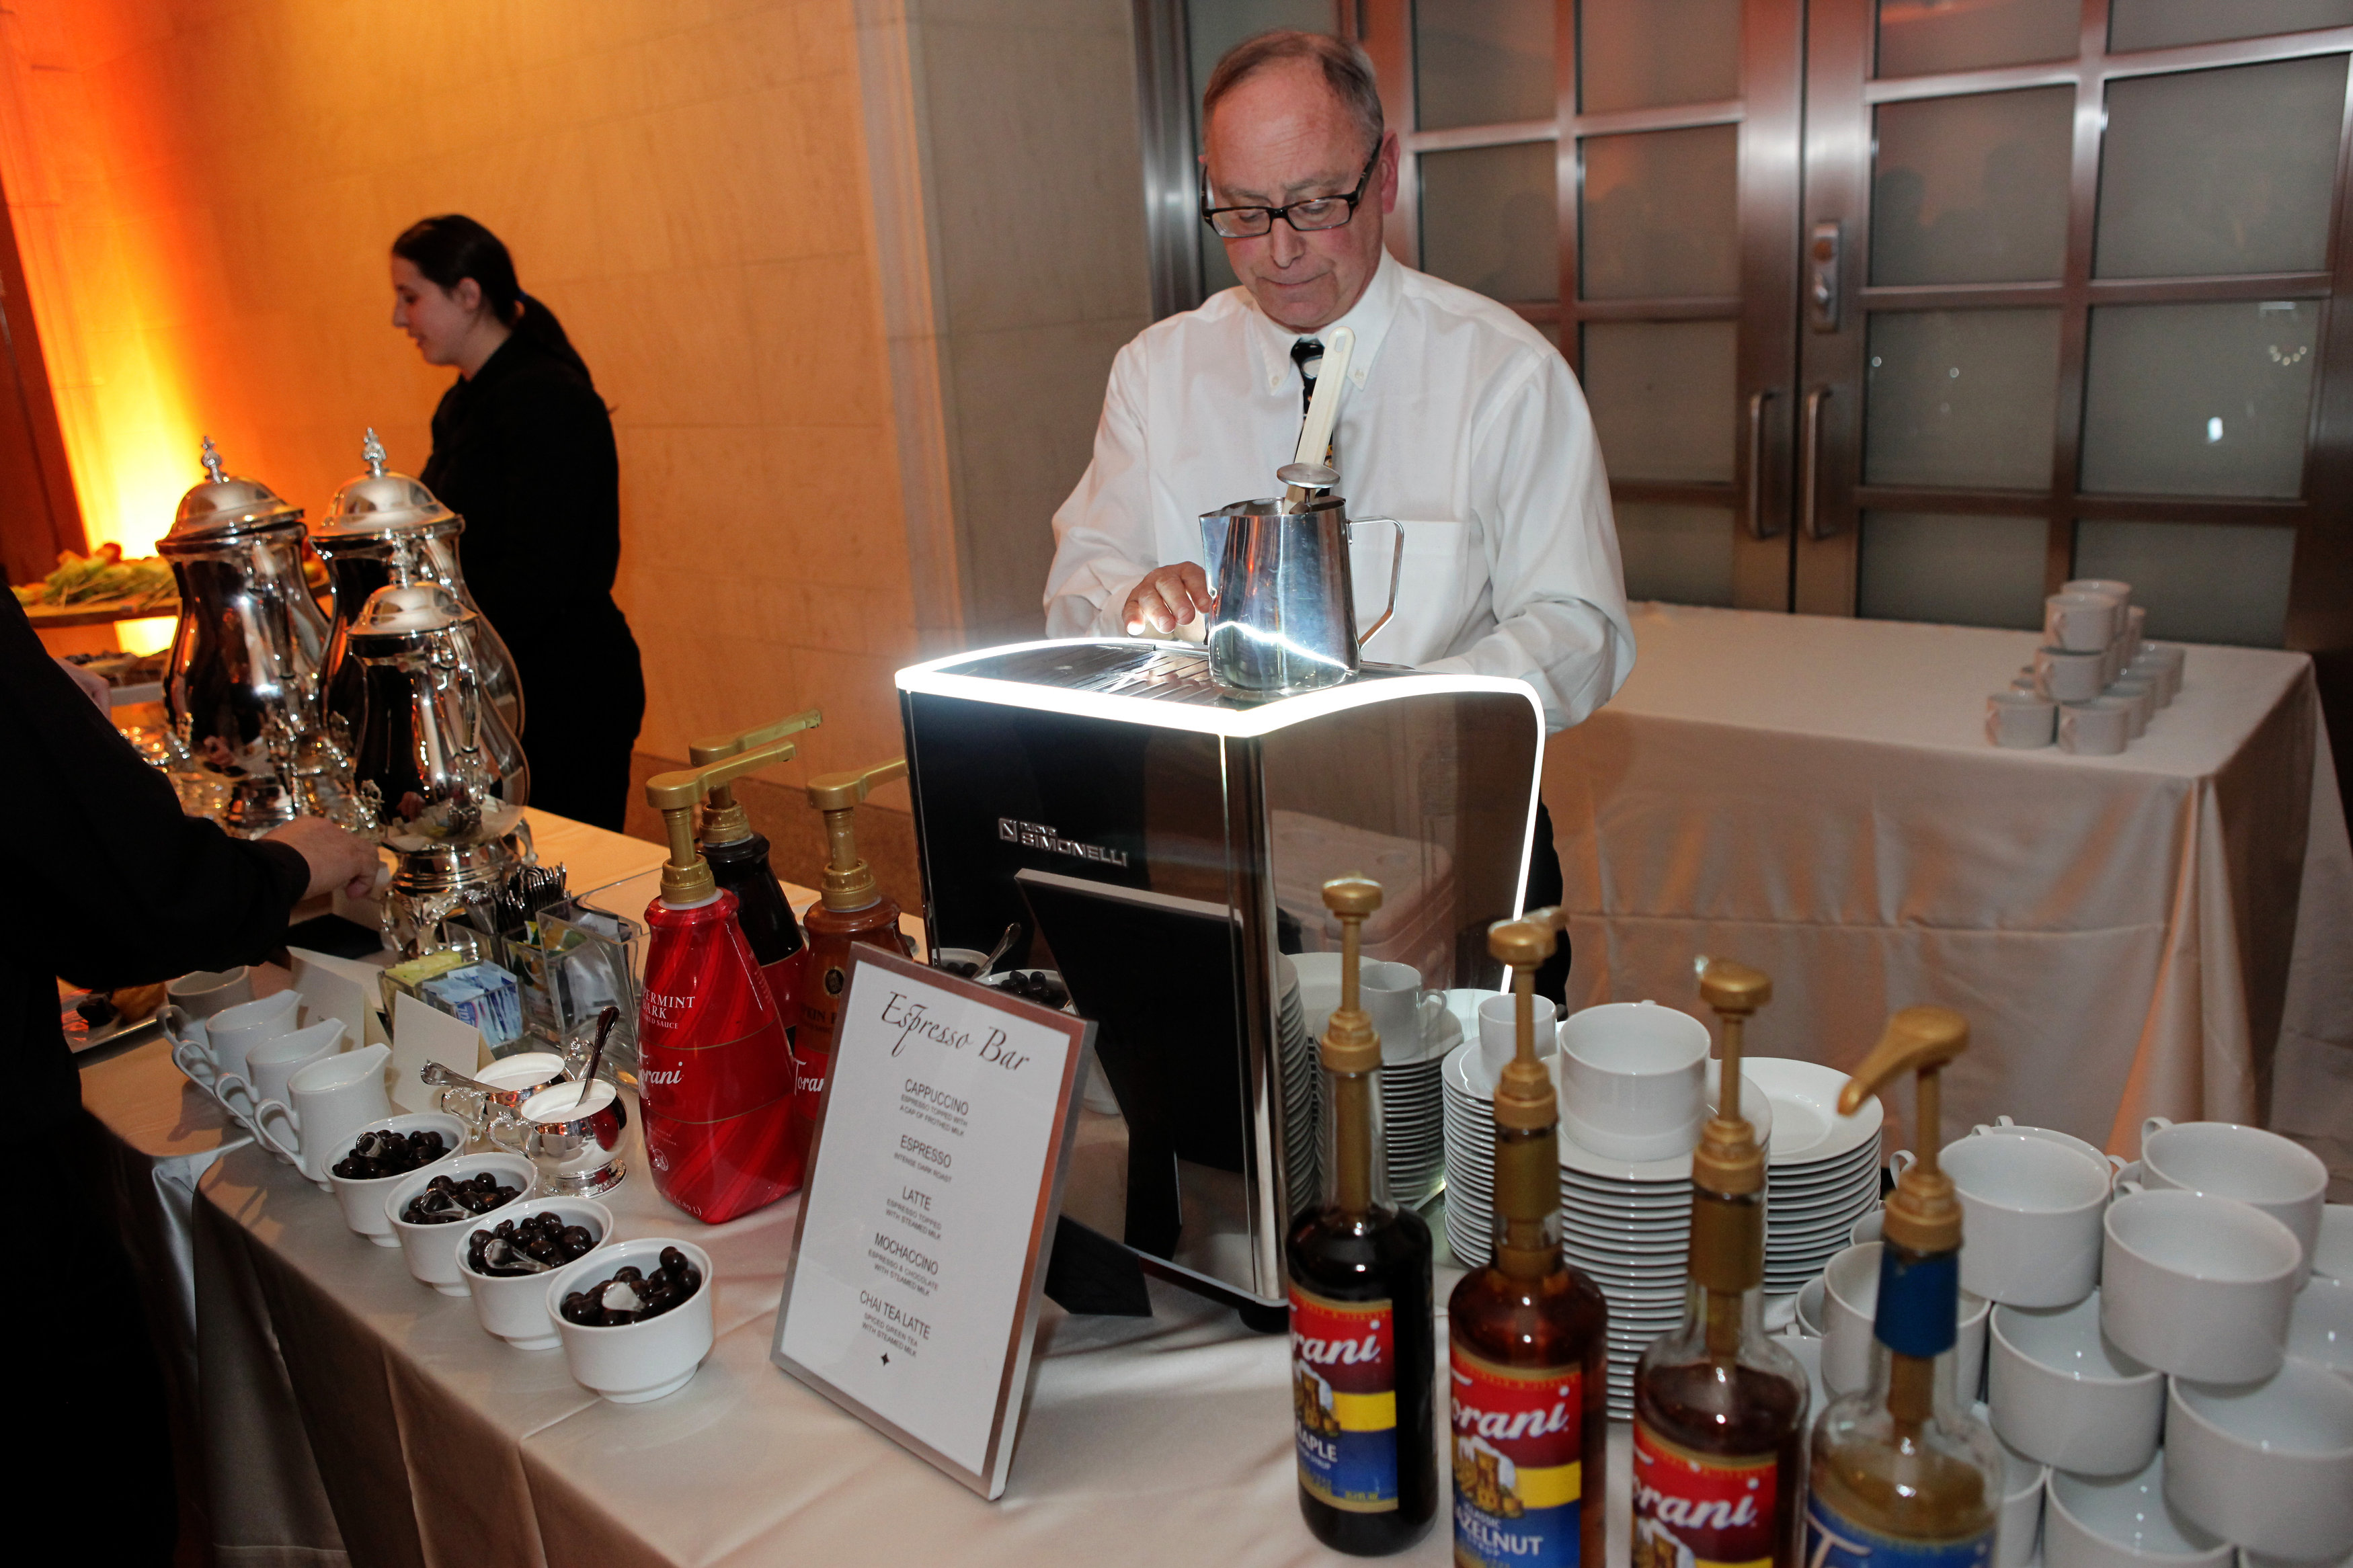 Ask the Wedding Professional: Espresso Dave's Catering Service - I DO Y'ALL